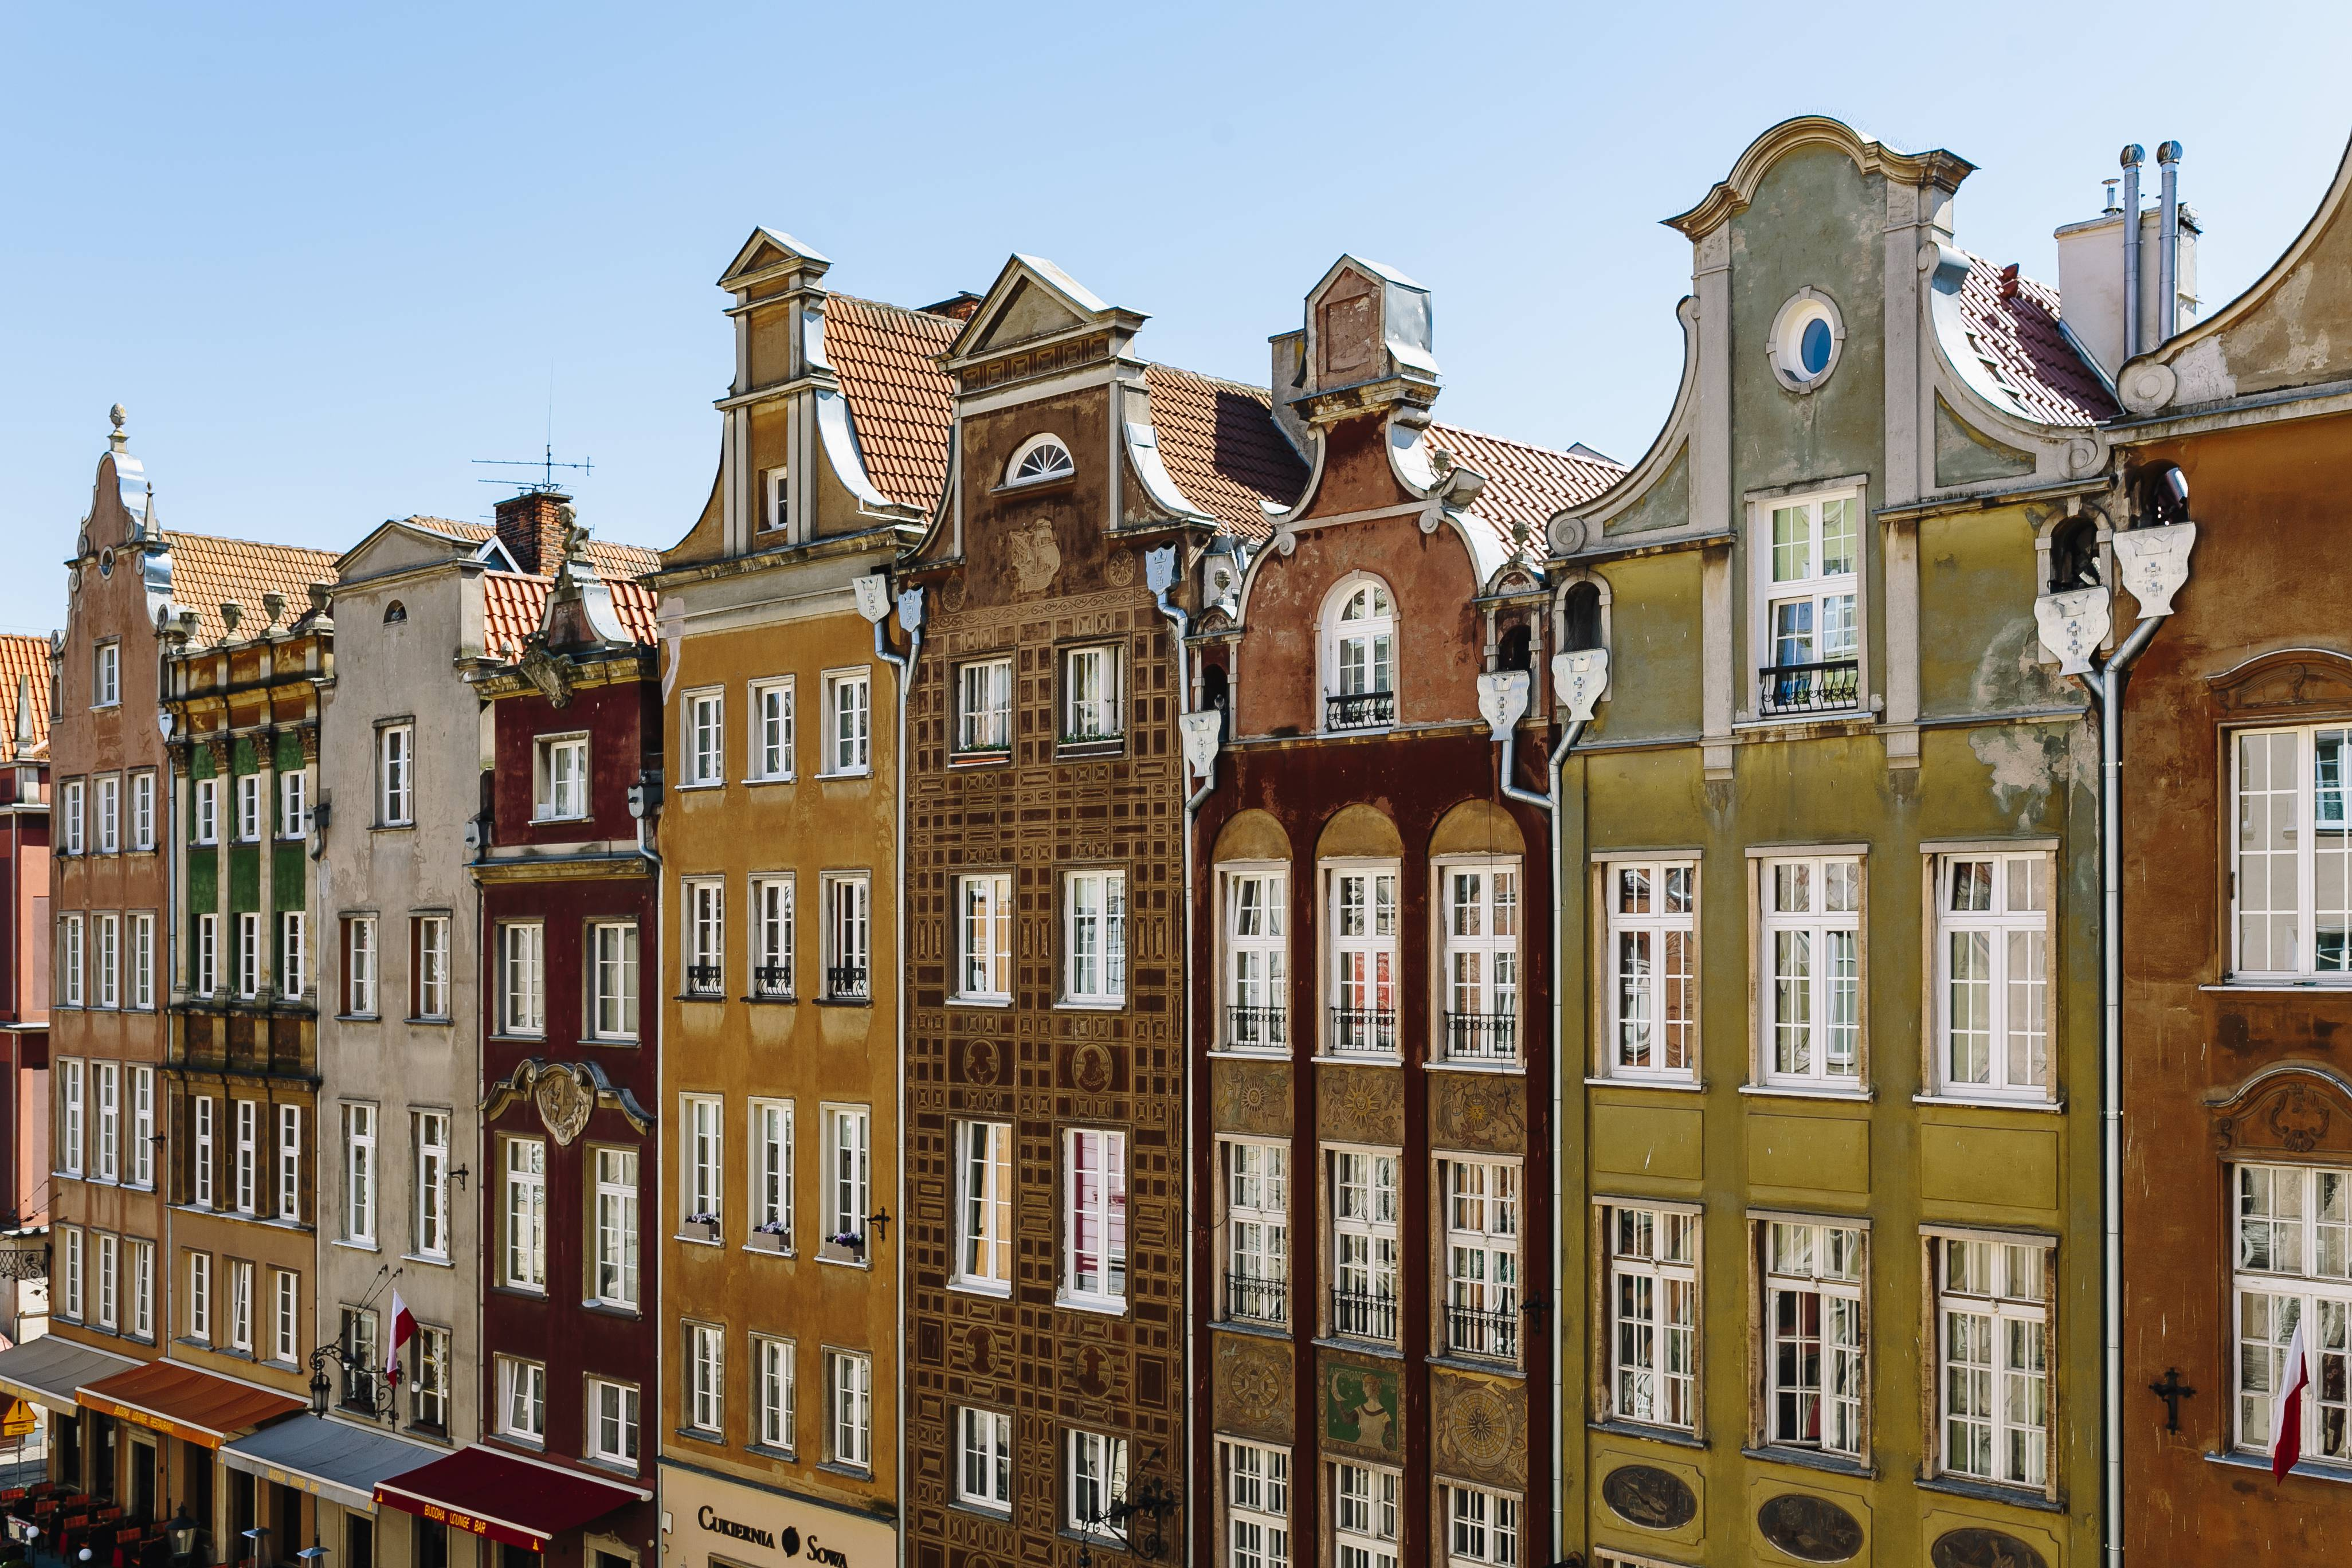 Tenement houses showing how to use HubSpot's lead segmentation tools